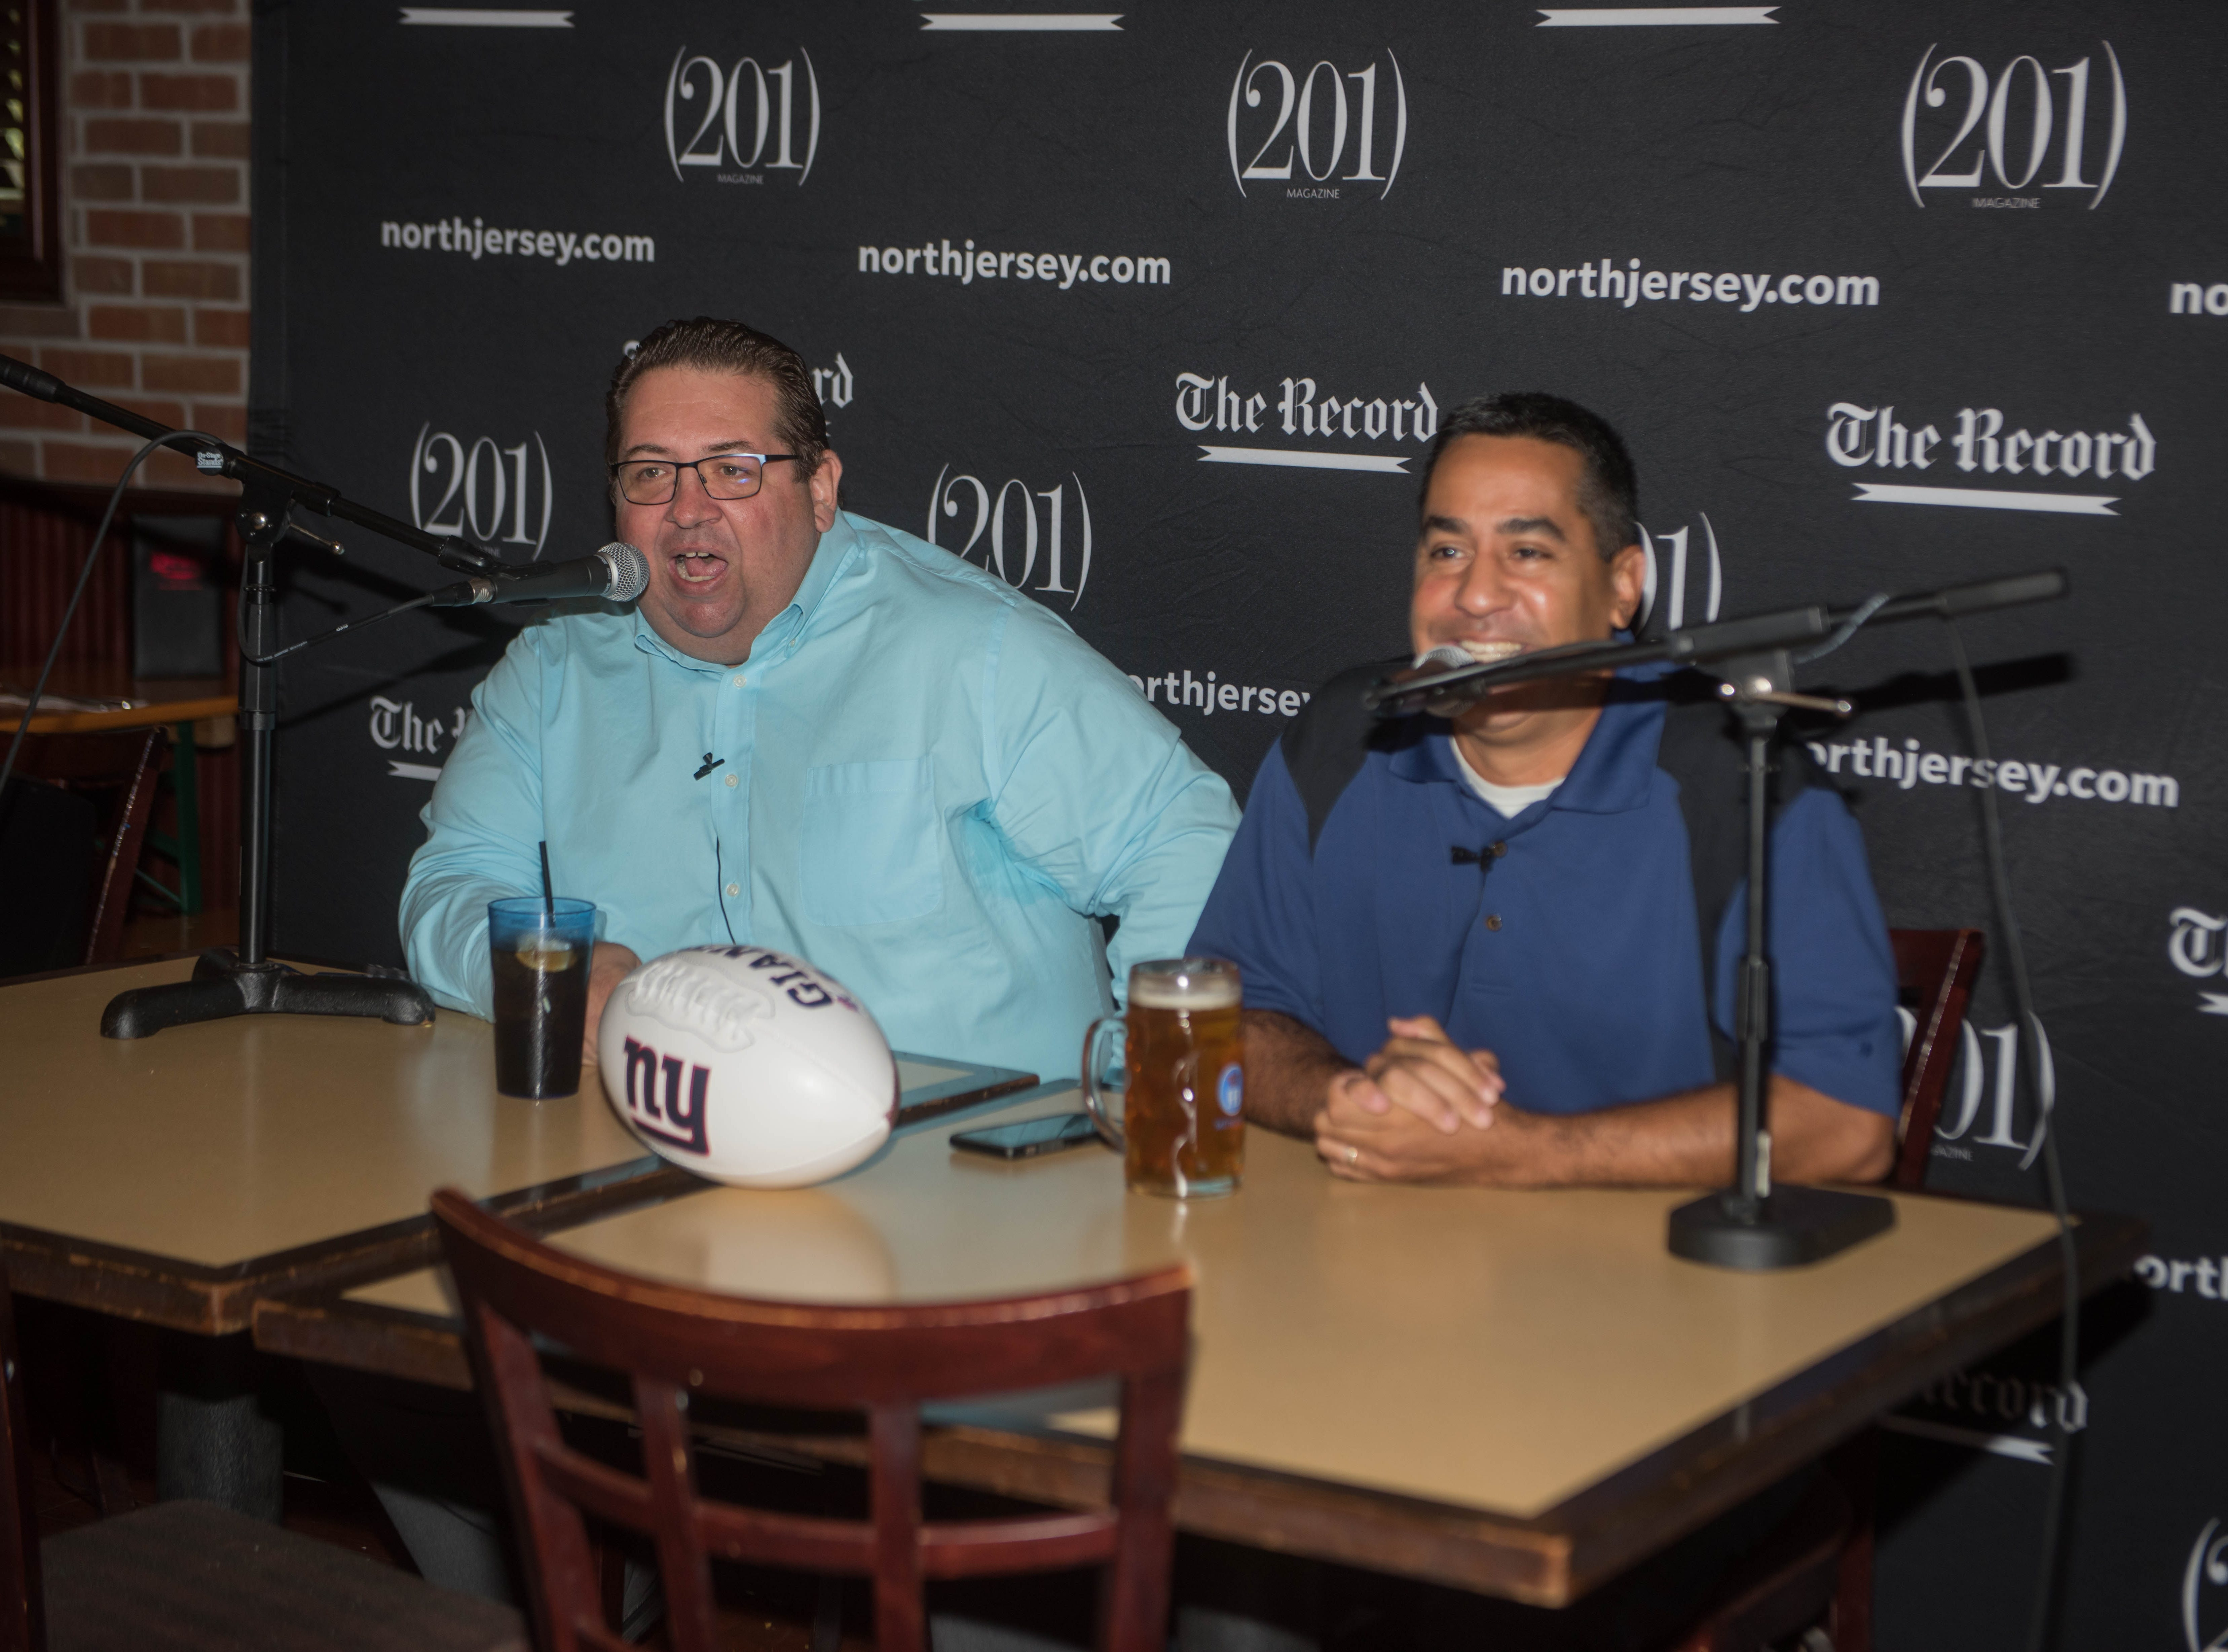 Art Stapleton and Dave Rivera talk Giants/Saints at Redd's. The Record sports writers Art Stapleton and Dave Rivera joined fans at Redd's to talk Giants and Saints before the game. 09/30/2018